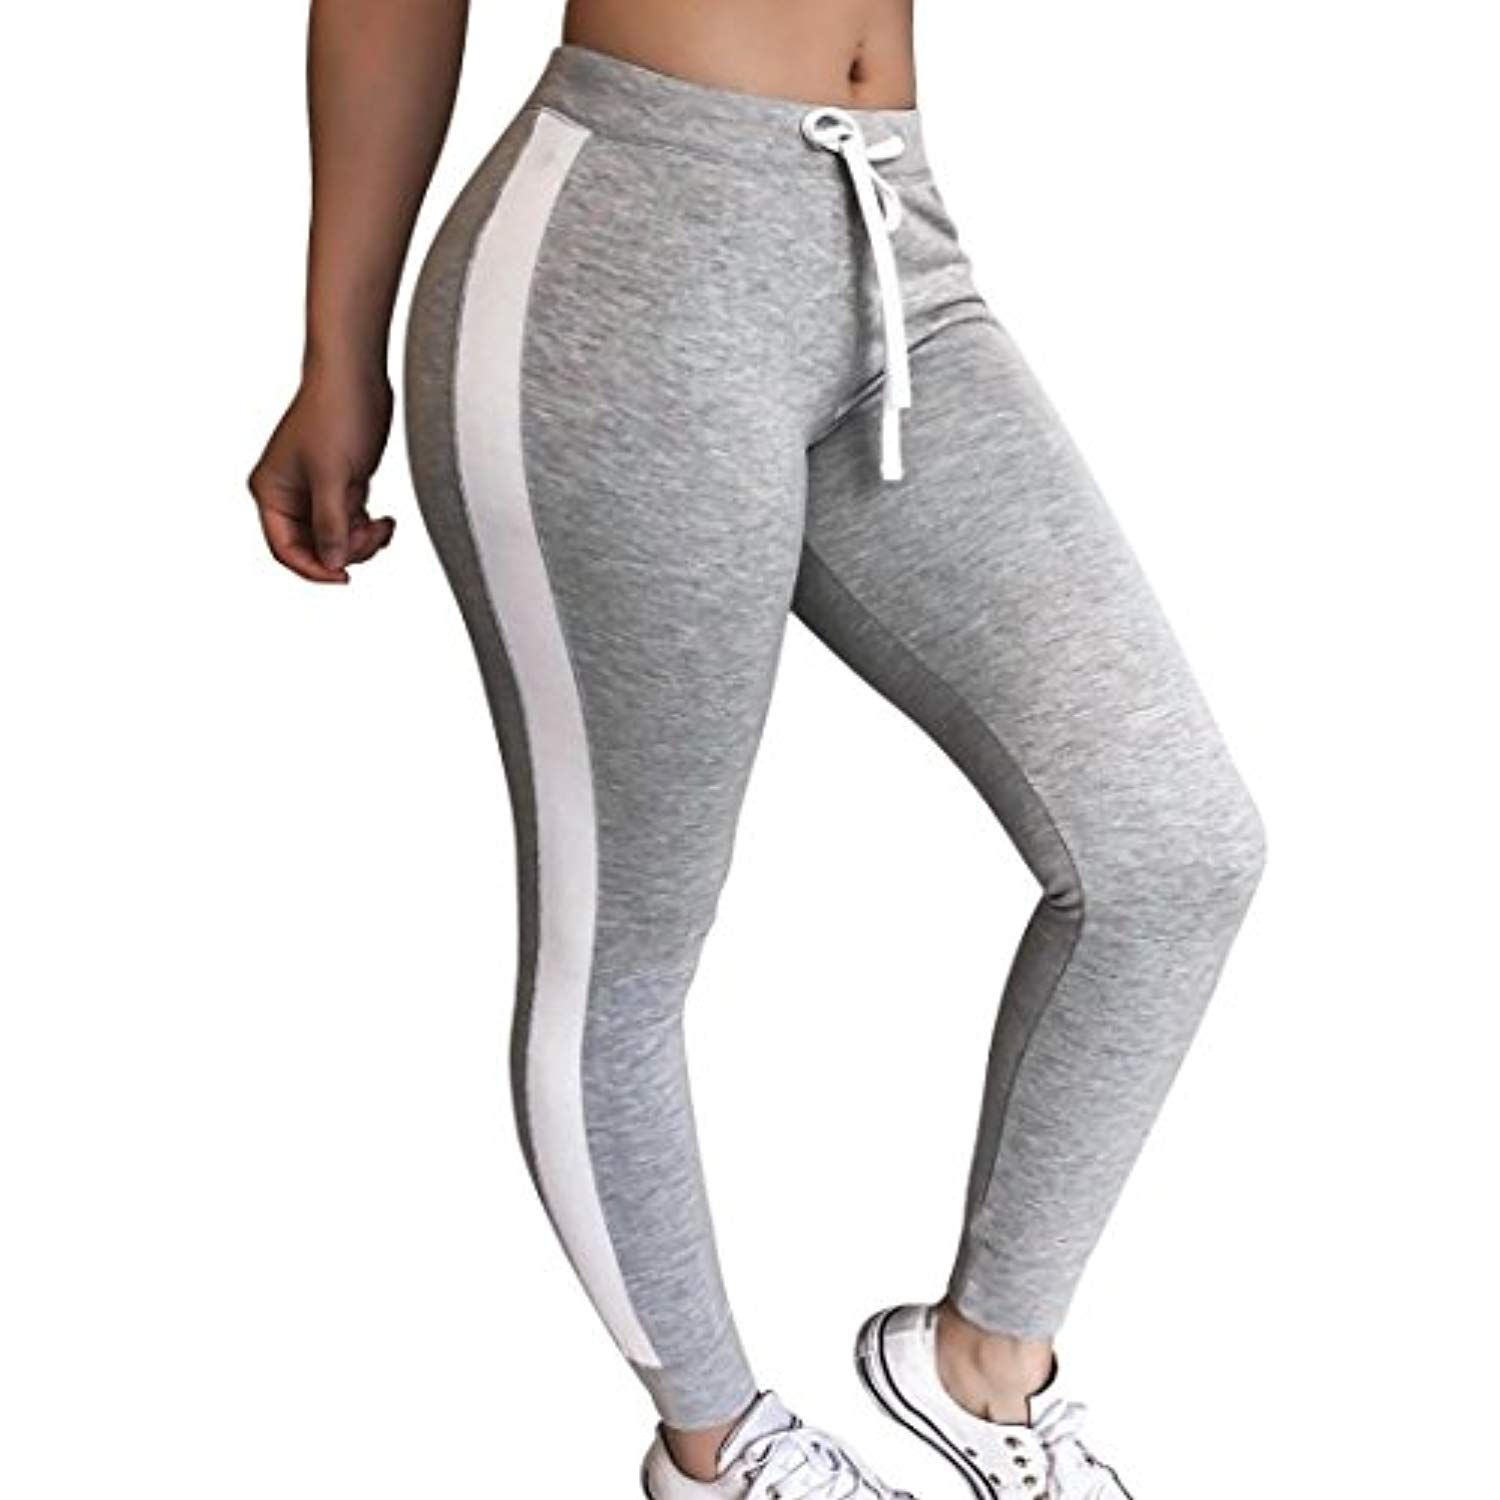 f43698febe Women Striped Drawstring Pants Women Bowtie Sports Casual Pants Sweatpants  Tight Youth Girls Exercise Outfits ** Click image for more details.